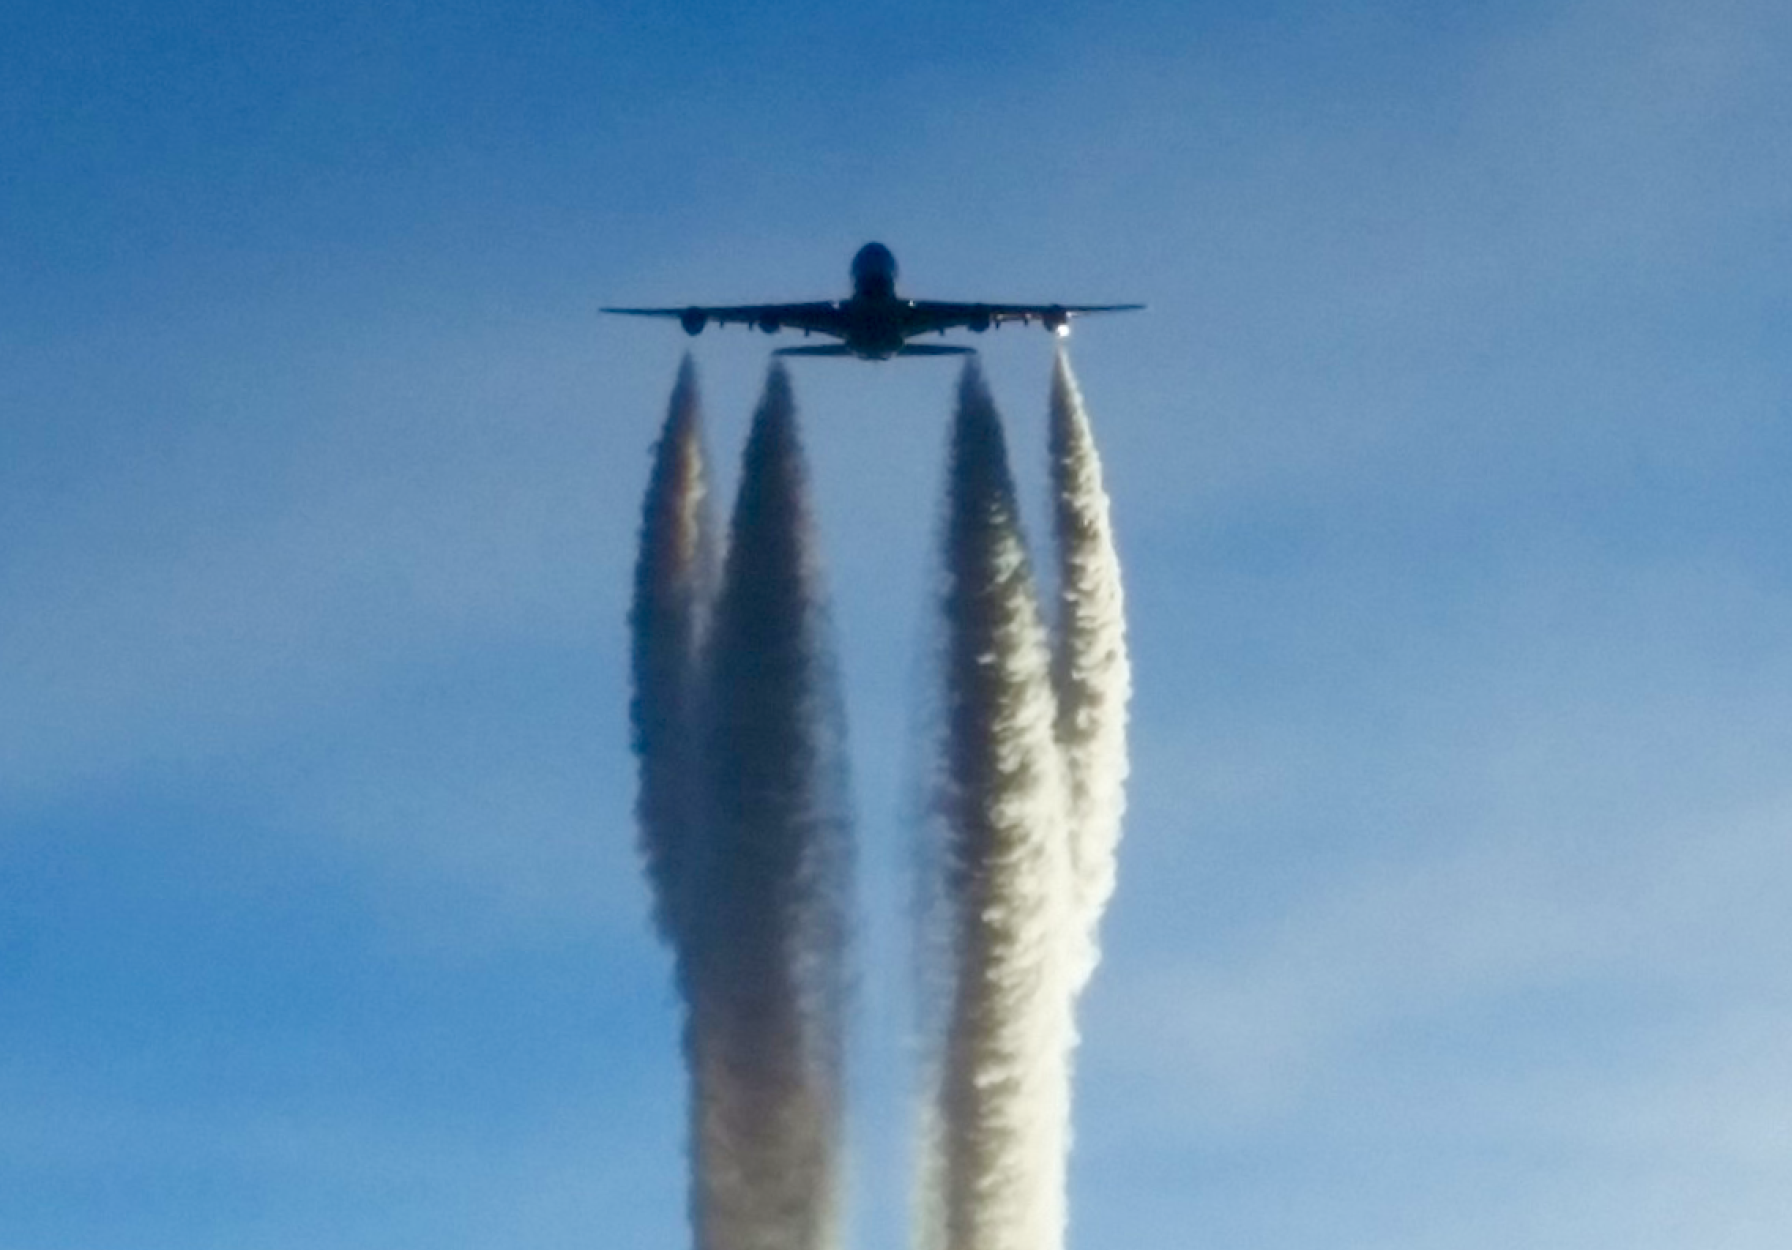 This is what an Airbus 380 looks like when it's coming to get you